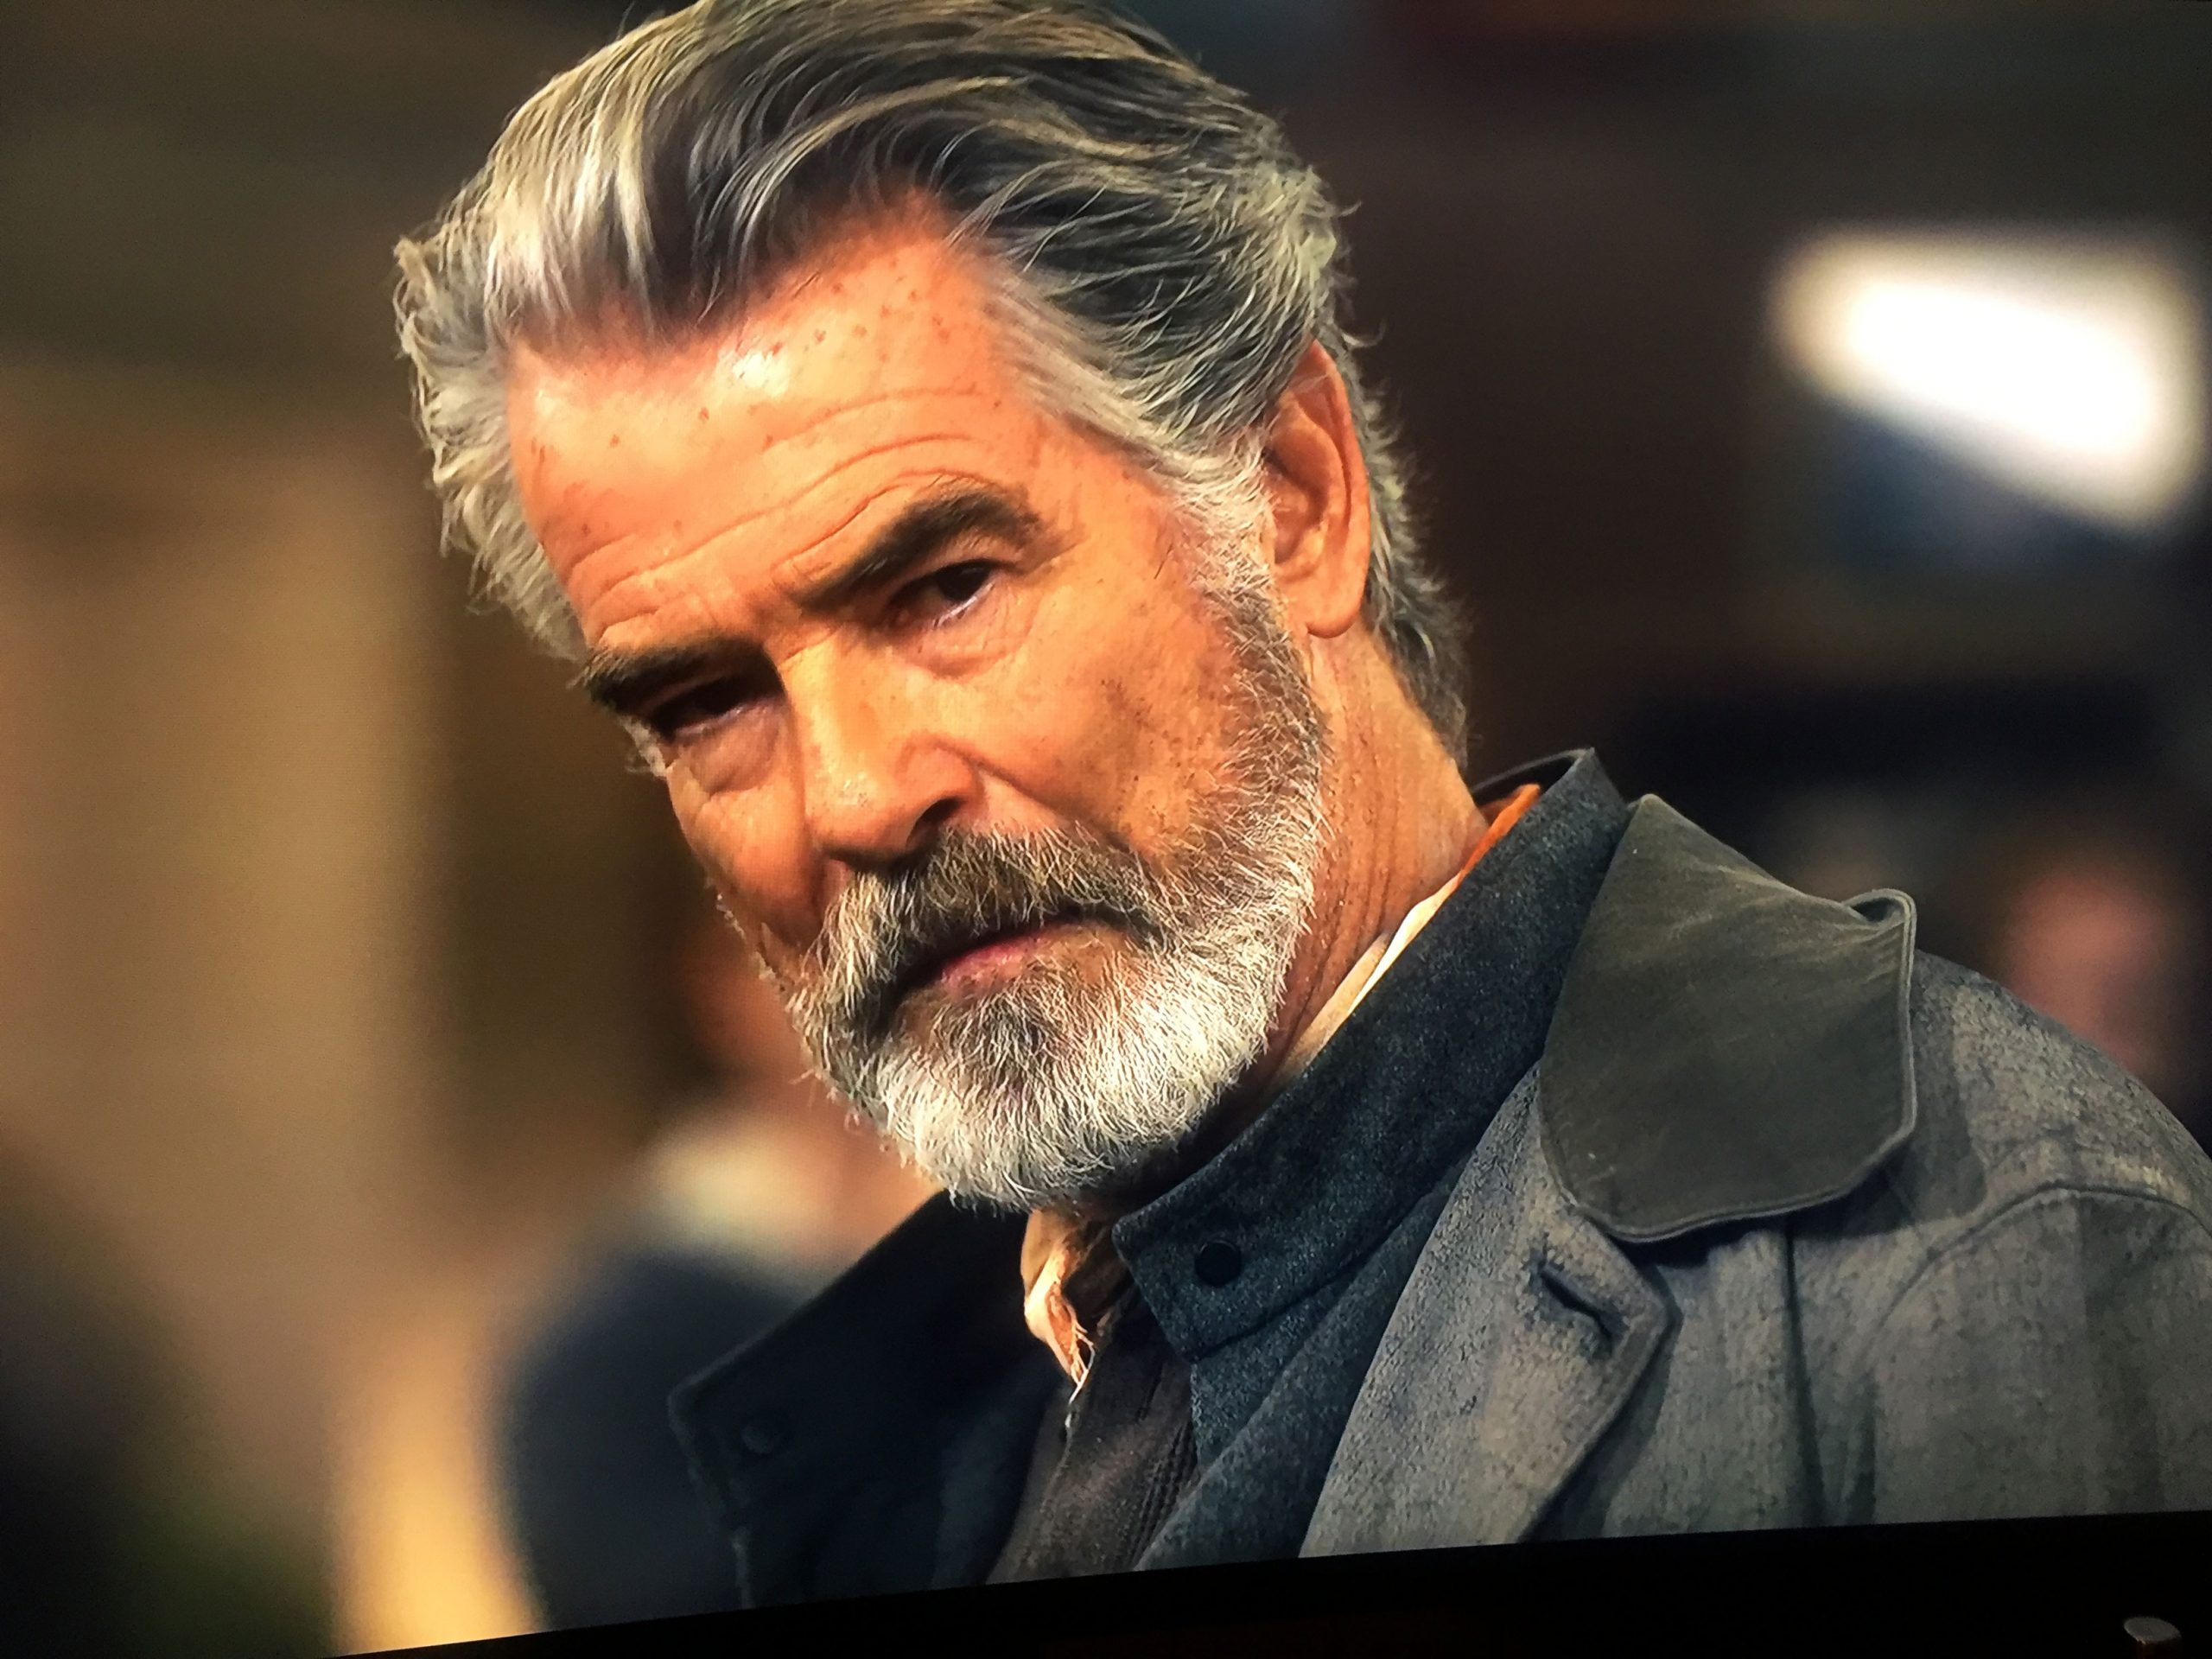 pierce brosnan looking mean